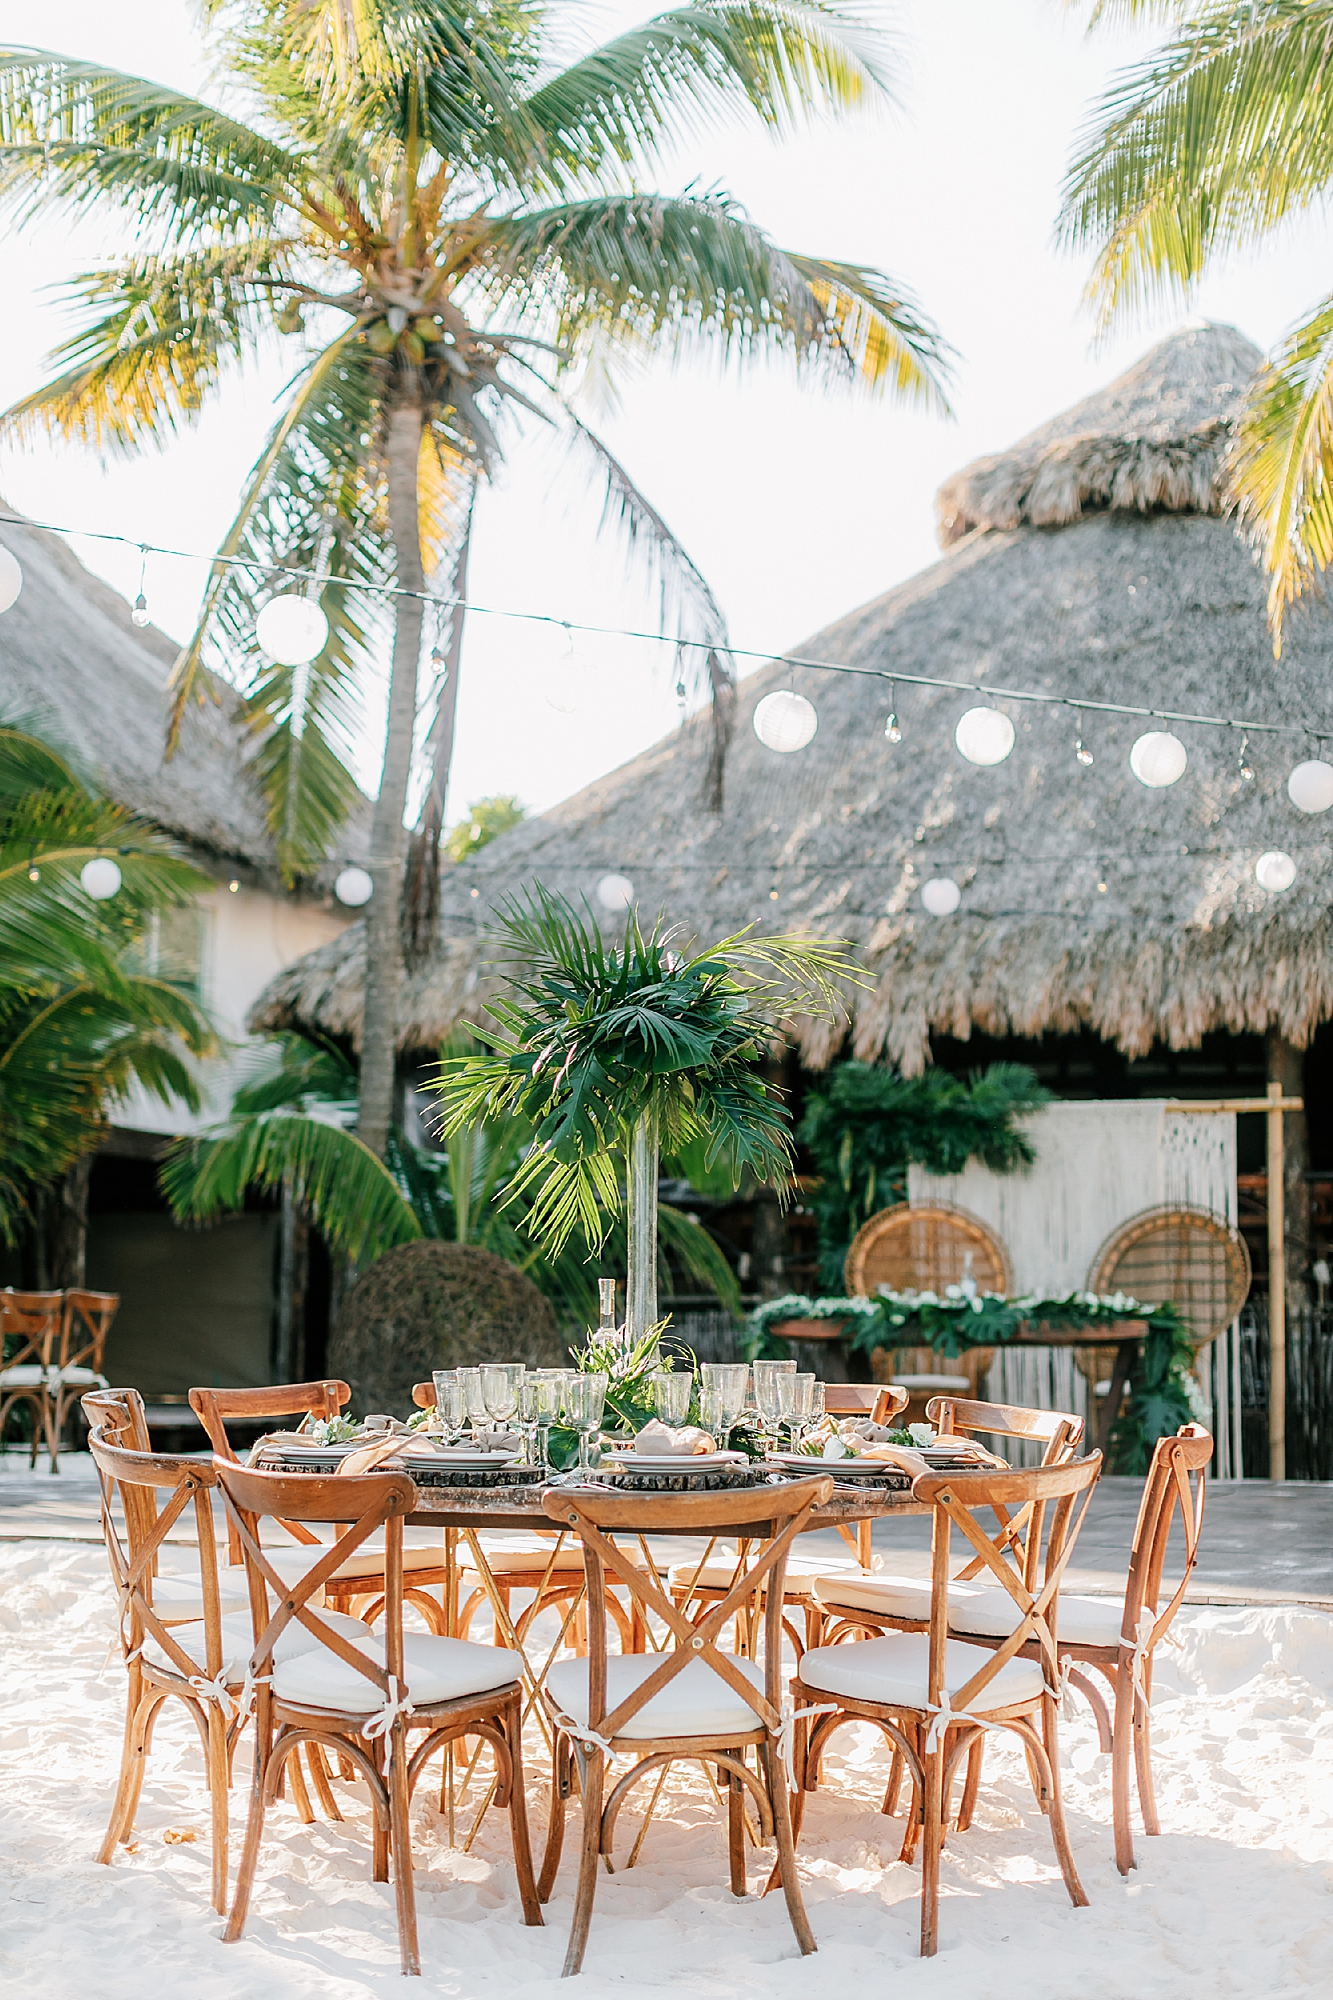 Stylish and Candid Destination Film Wedding Photography in Tulum Mexico by Magdalena Studios 0035